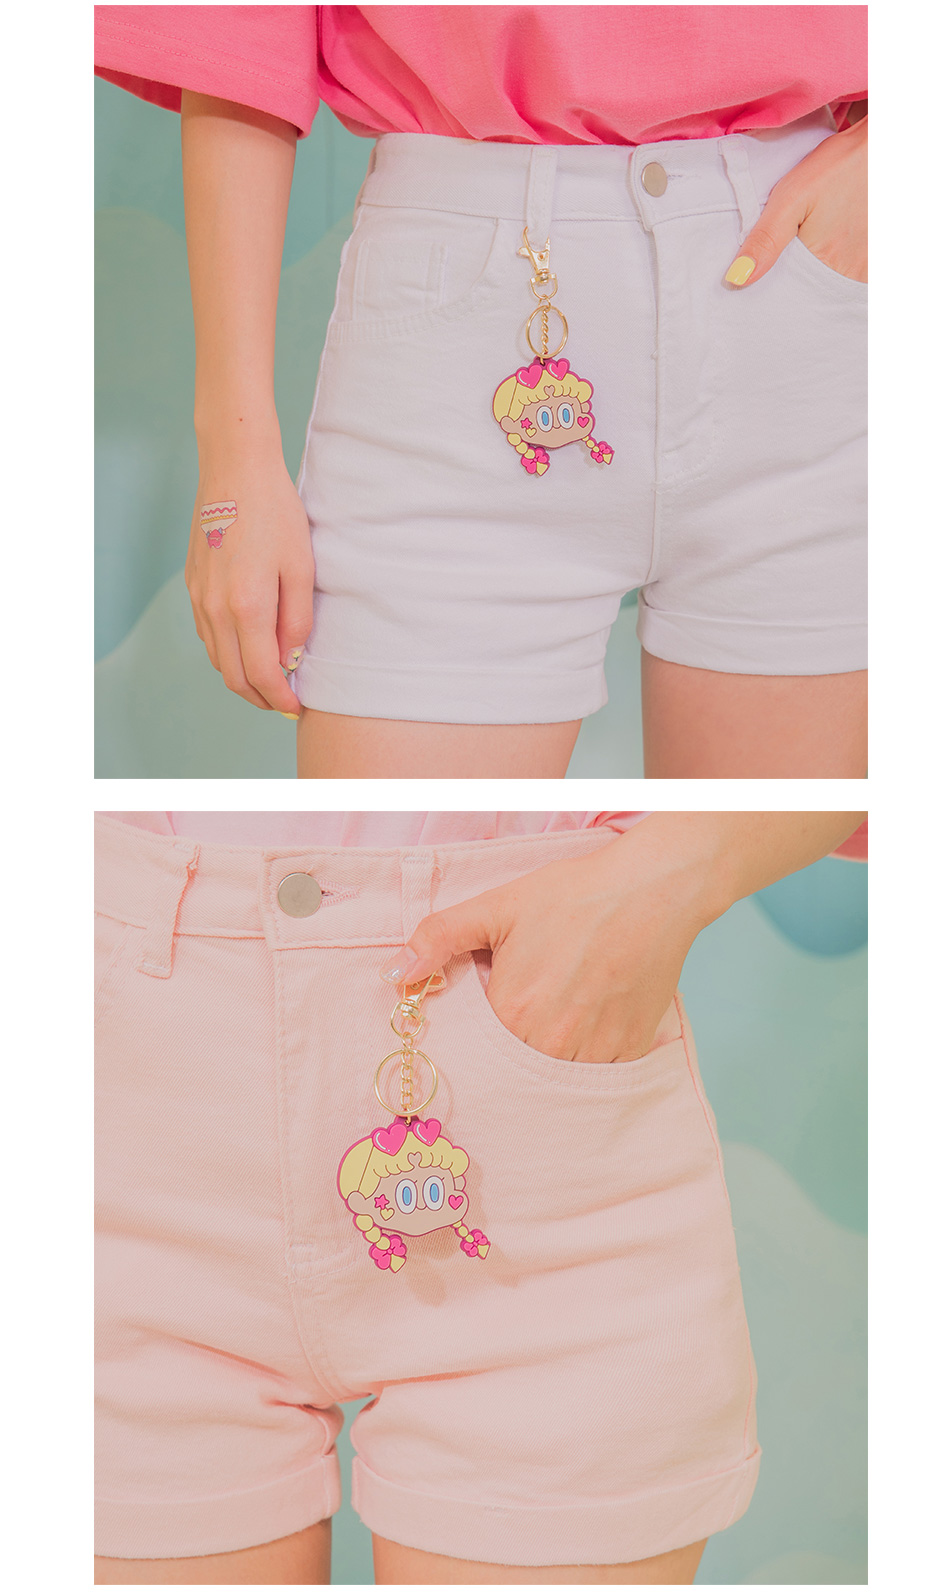 //cdn.nhanh.vn/cdn/store/29770/psCT/20180909/8968190/CHUU_LEEGONG_POOL_PARTY_Pink_Wave_Shorts_(6).jpg